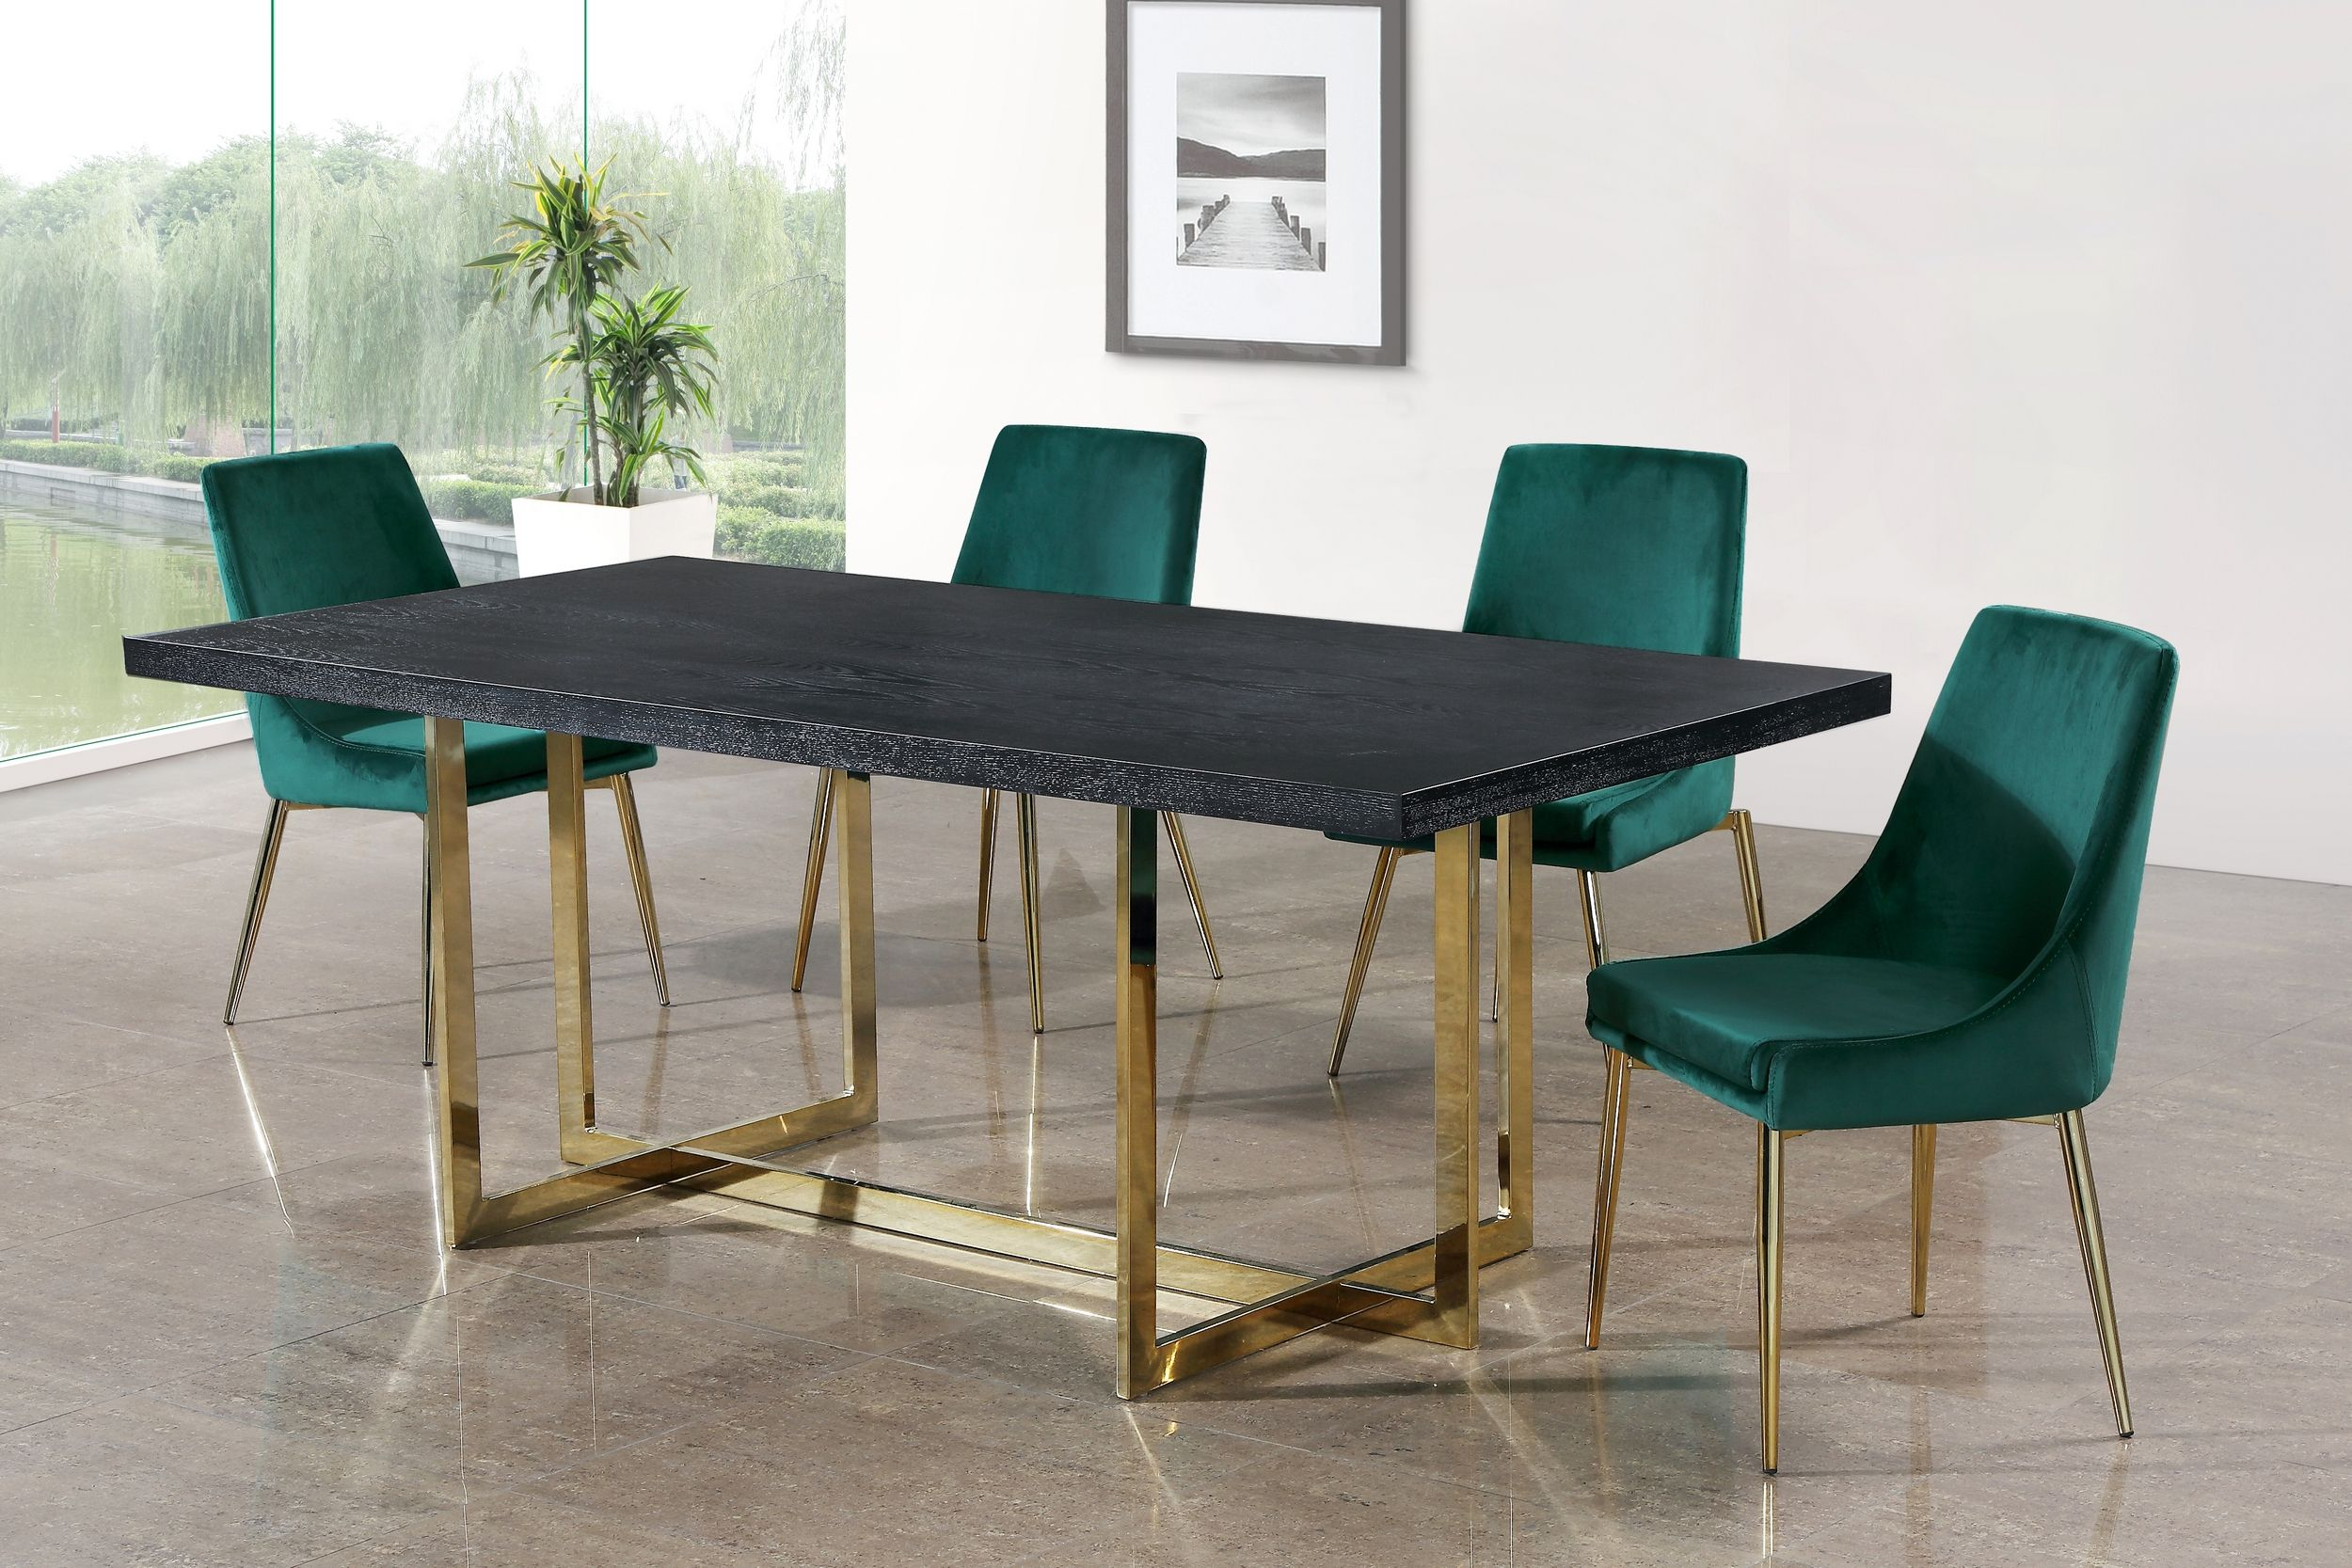 Meridian Elle Karina Green Gold 5 Piece Dining Table Set